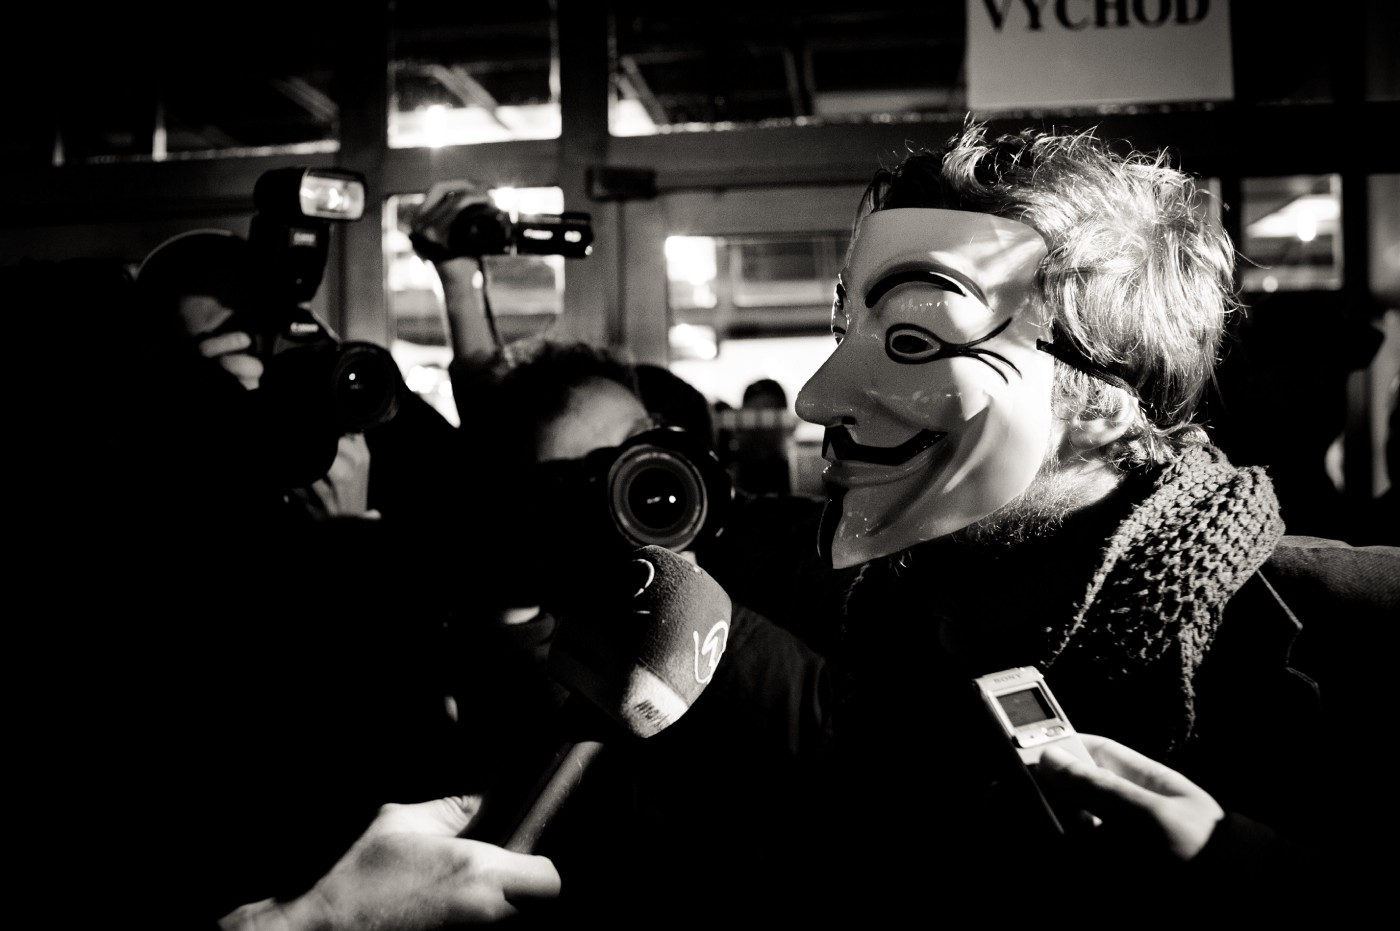 A masked man surrounded by paparazzi